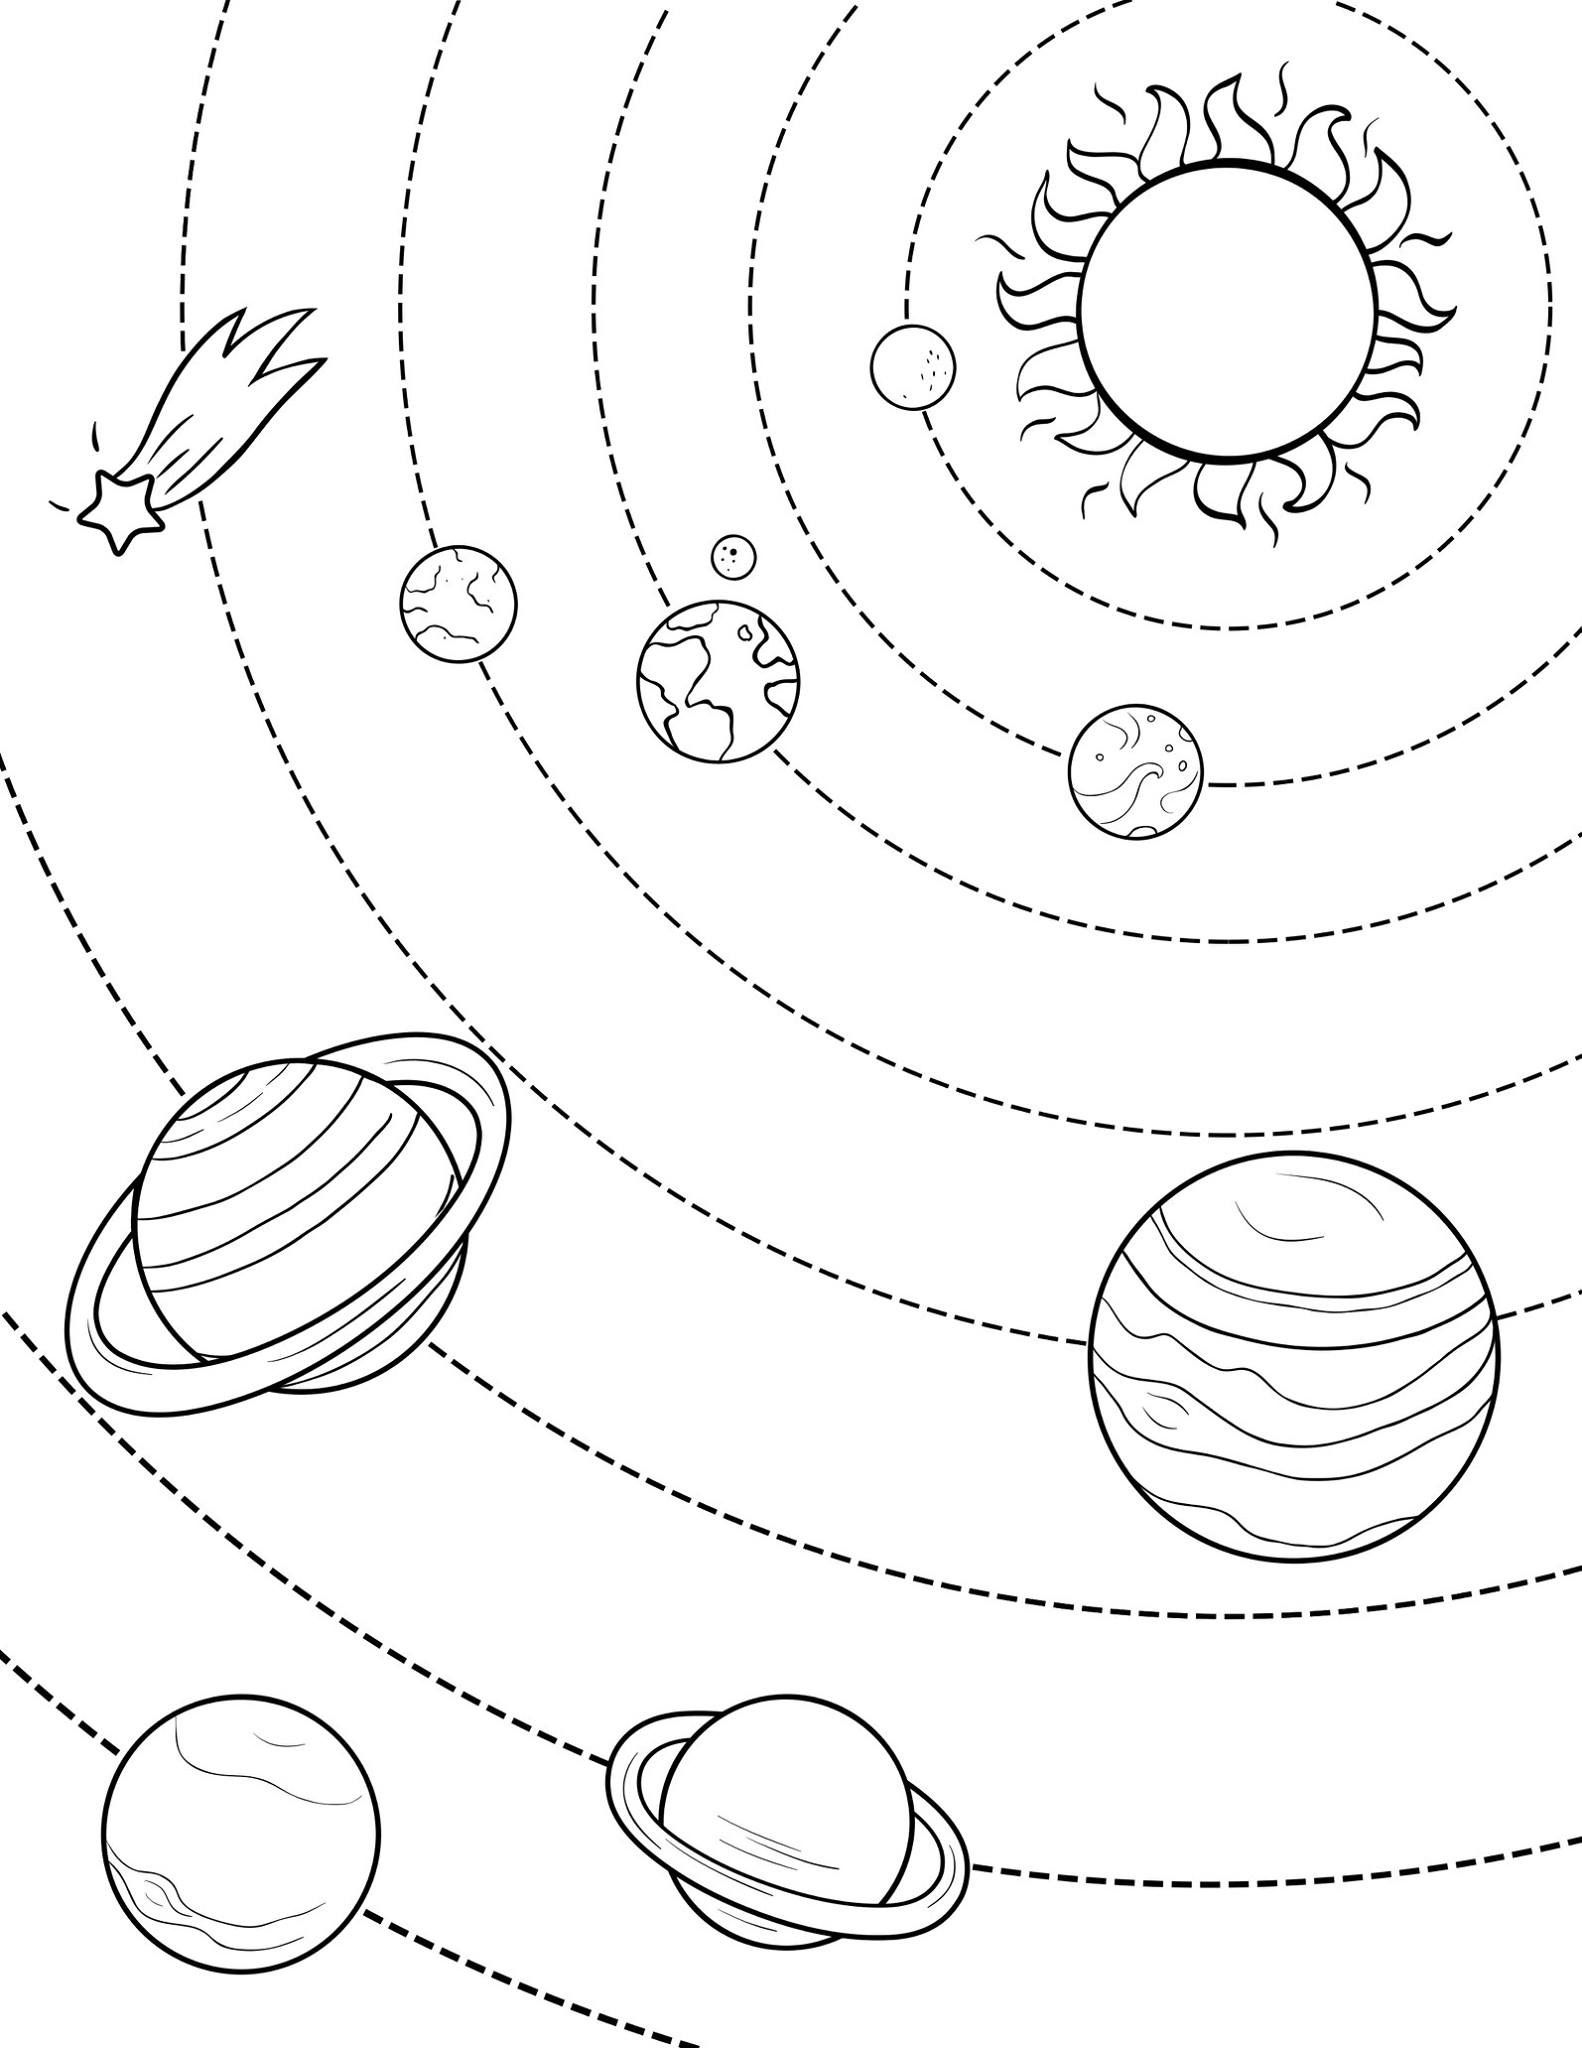 coloring solar system planets planet coloring pages with the 9 planets coloring pages 2019 planets solar system coloring